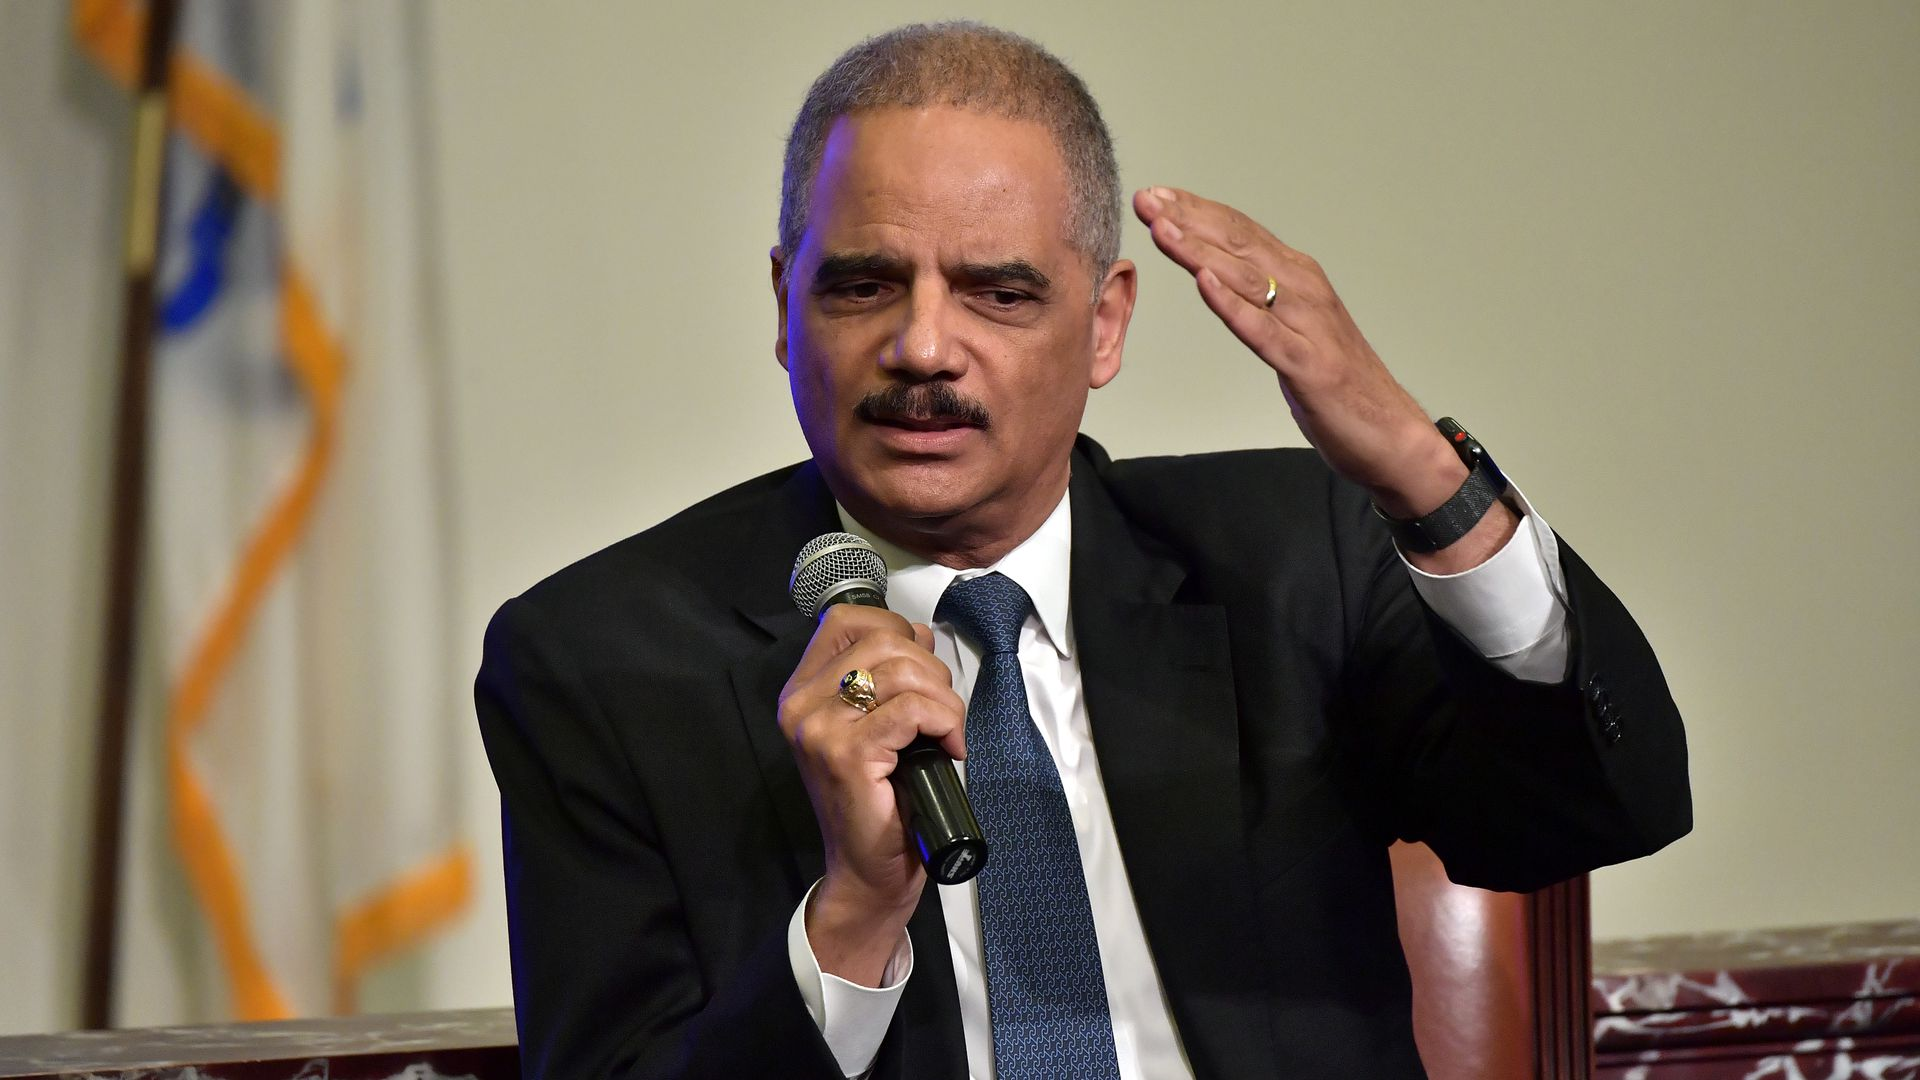 Eric Holder gestures with one arm.